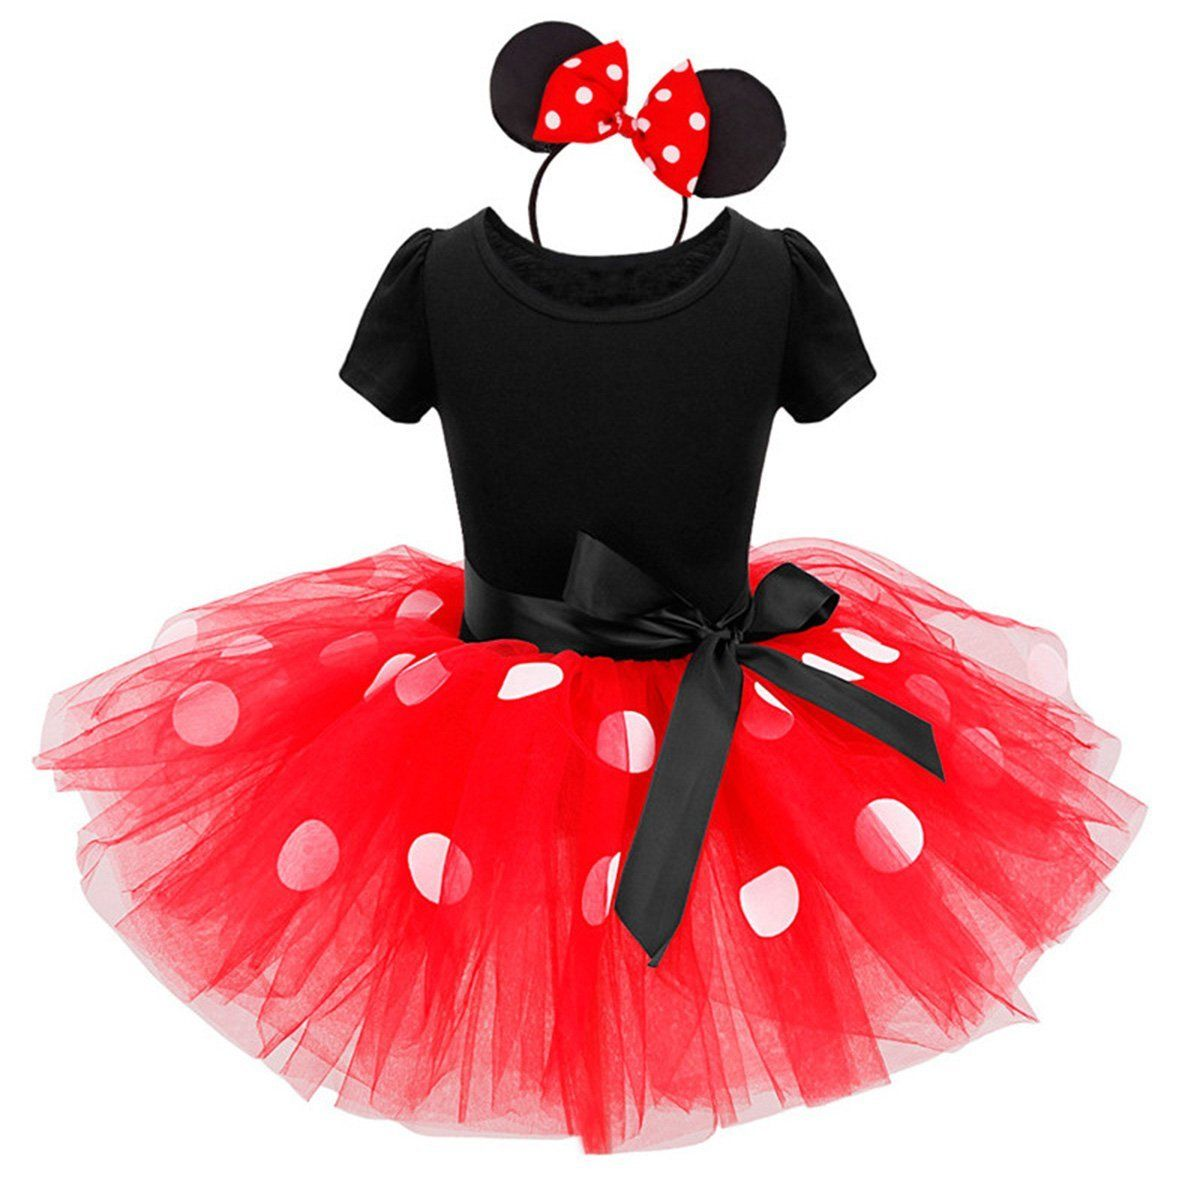 Baby girl dress Party Costume Ballet Dresses Kids Tutu Leotard Dance dress Headwear clothes set Polka Dot Bowknot Minnie dresses 1set baby girl polka dot headband romper tutu outfit party birthday costume 6 colors